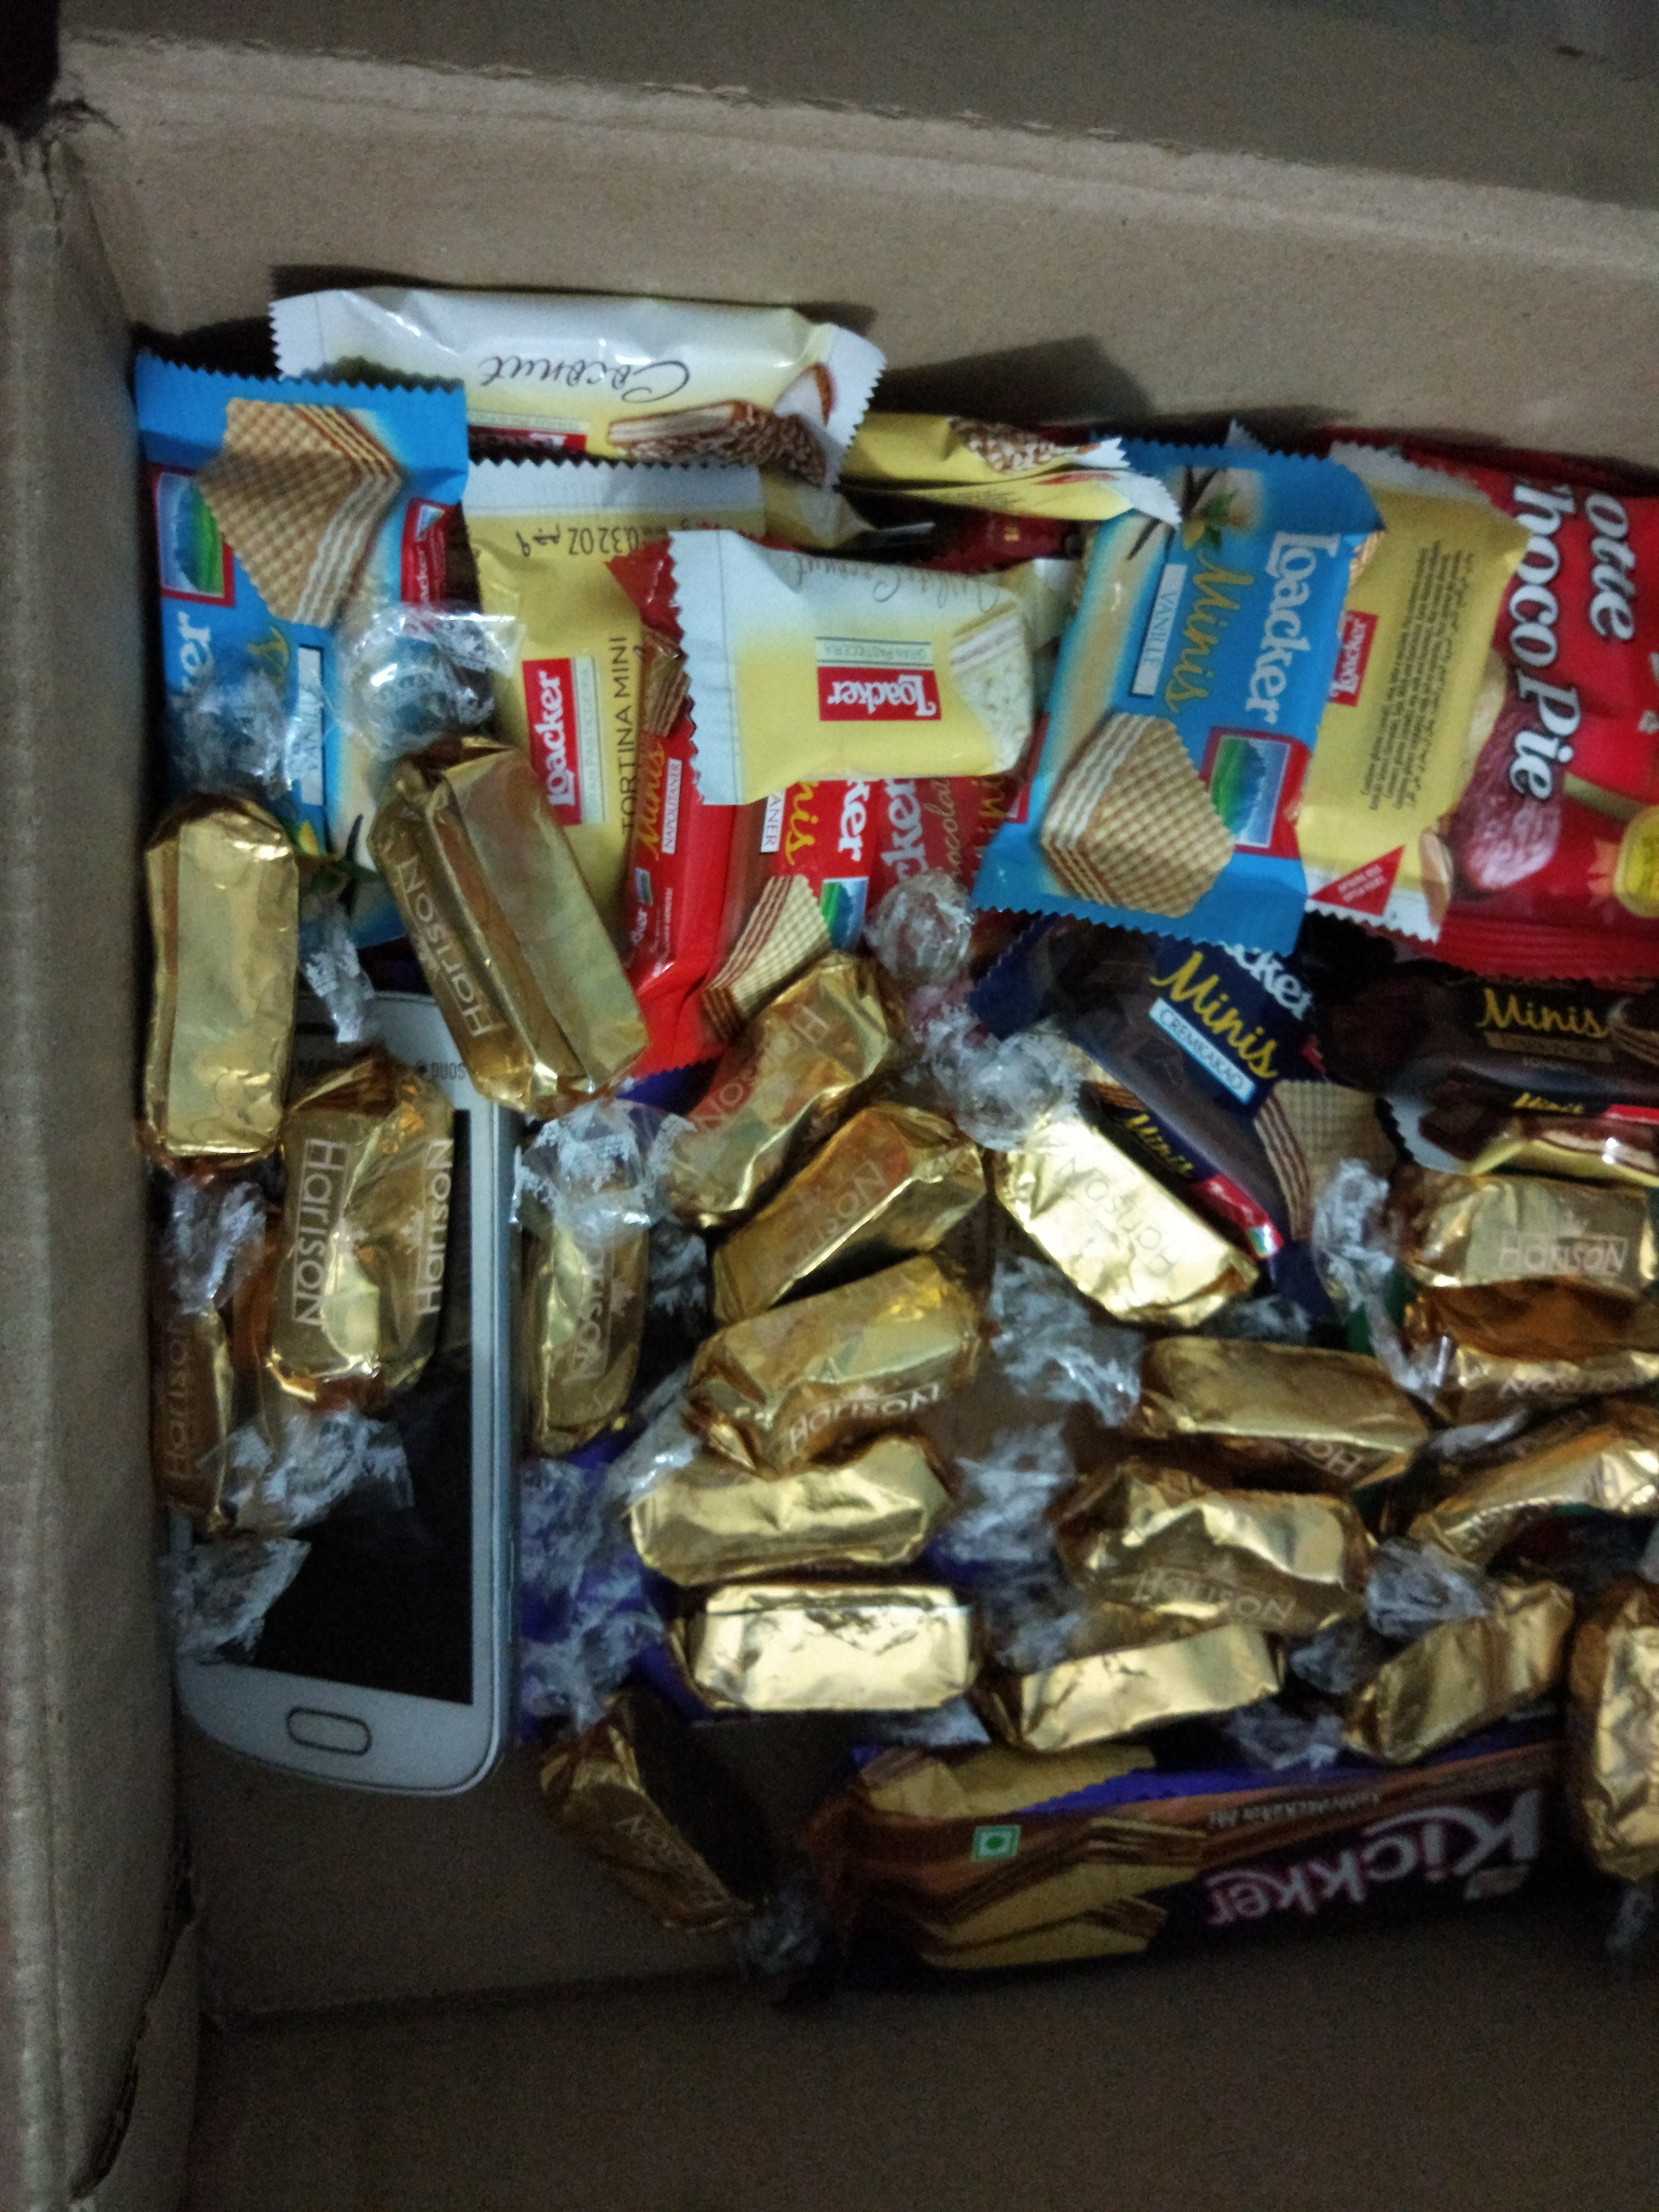 samsung phone in candy box